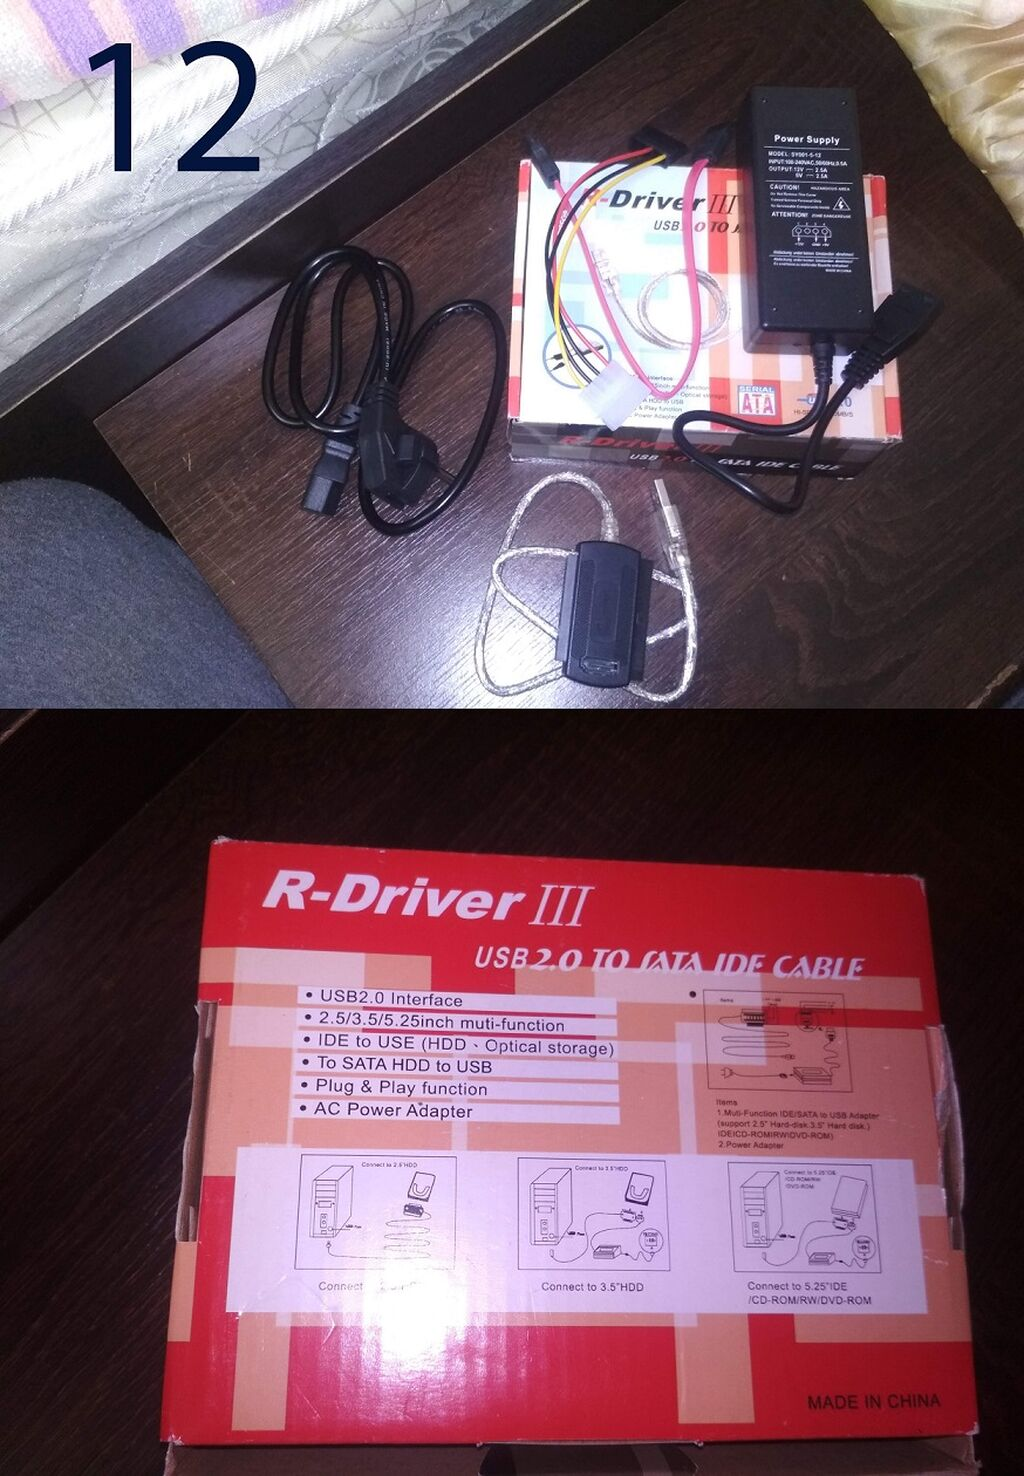 R-Driver III USB 2.0 to SATA IDE Cable